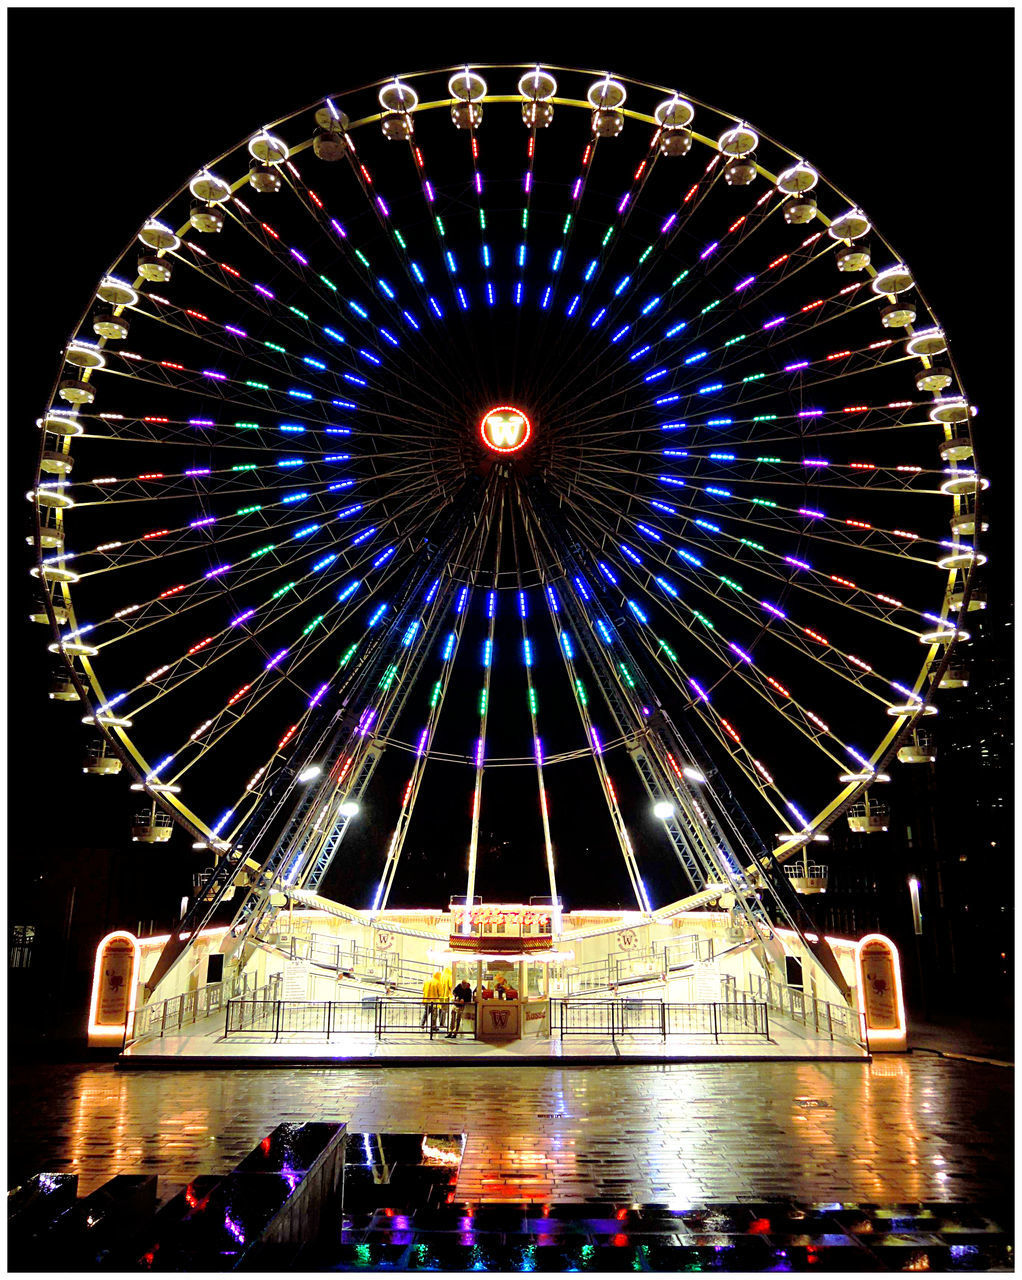 illuminated, architecture, amusement park, amusement park ride, arts culture and entertainment, night, built structure, ferris wheel, auto post production filter, building exterior, transfer print, water, city, multi colored, lighting equipment, outdoors, travel destinations, group of people, nature, light, nightlife, fairground